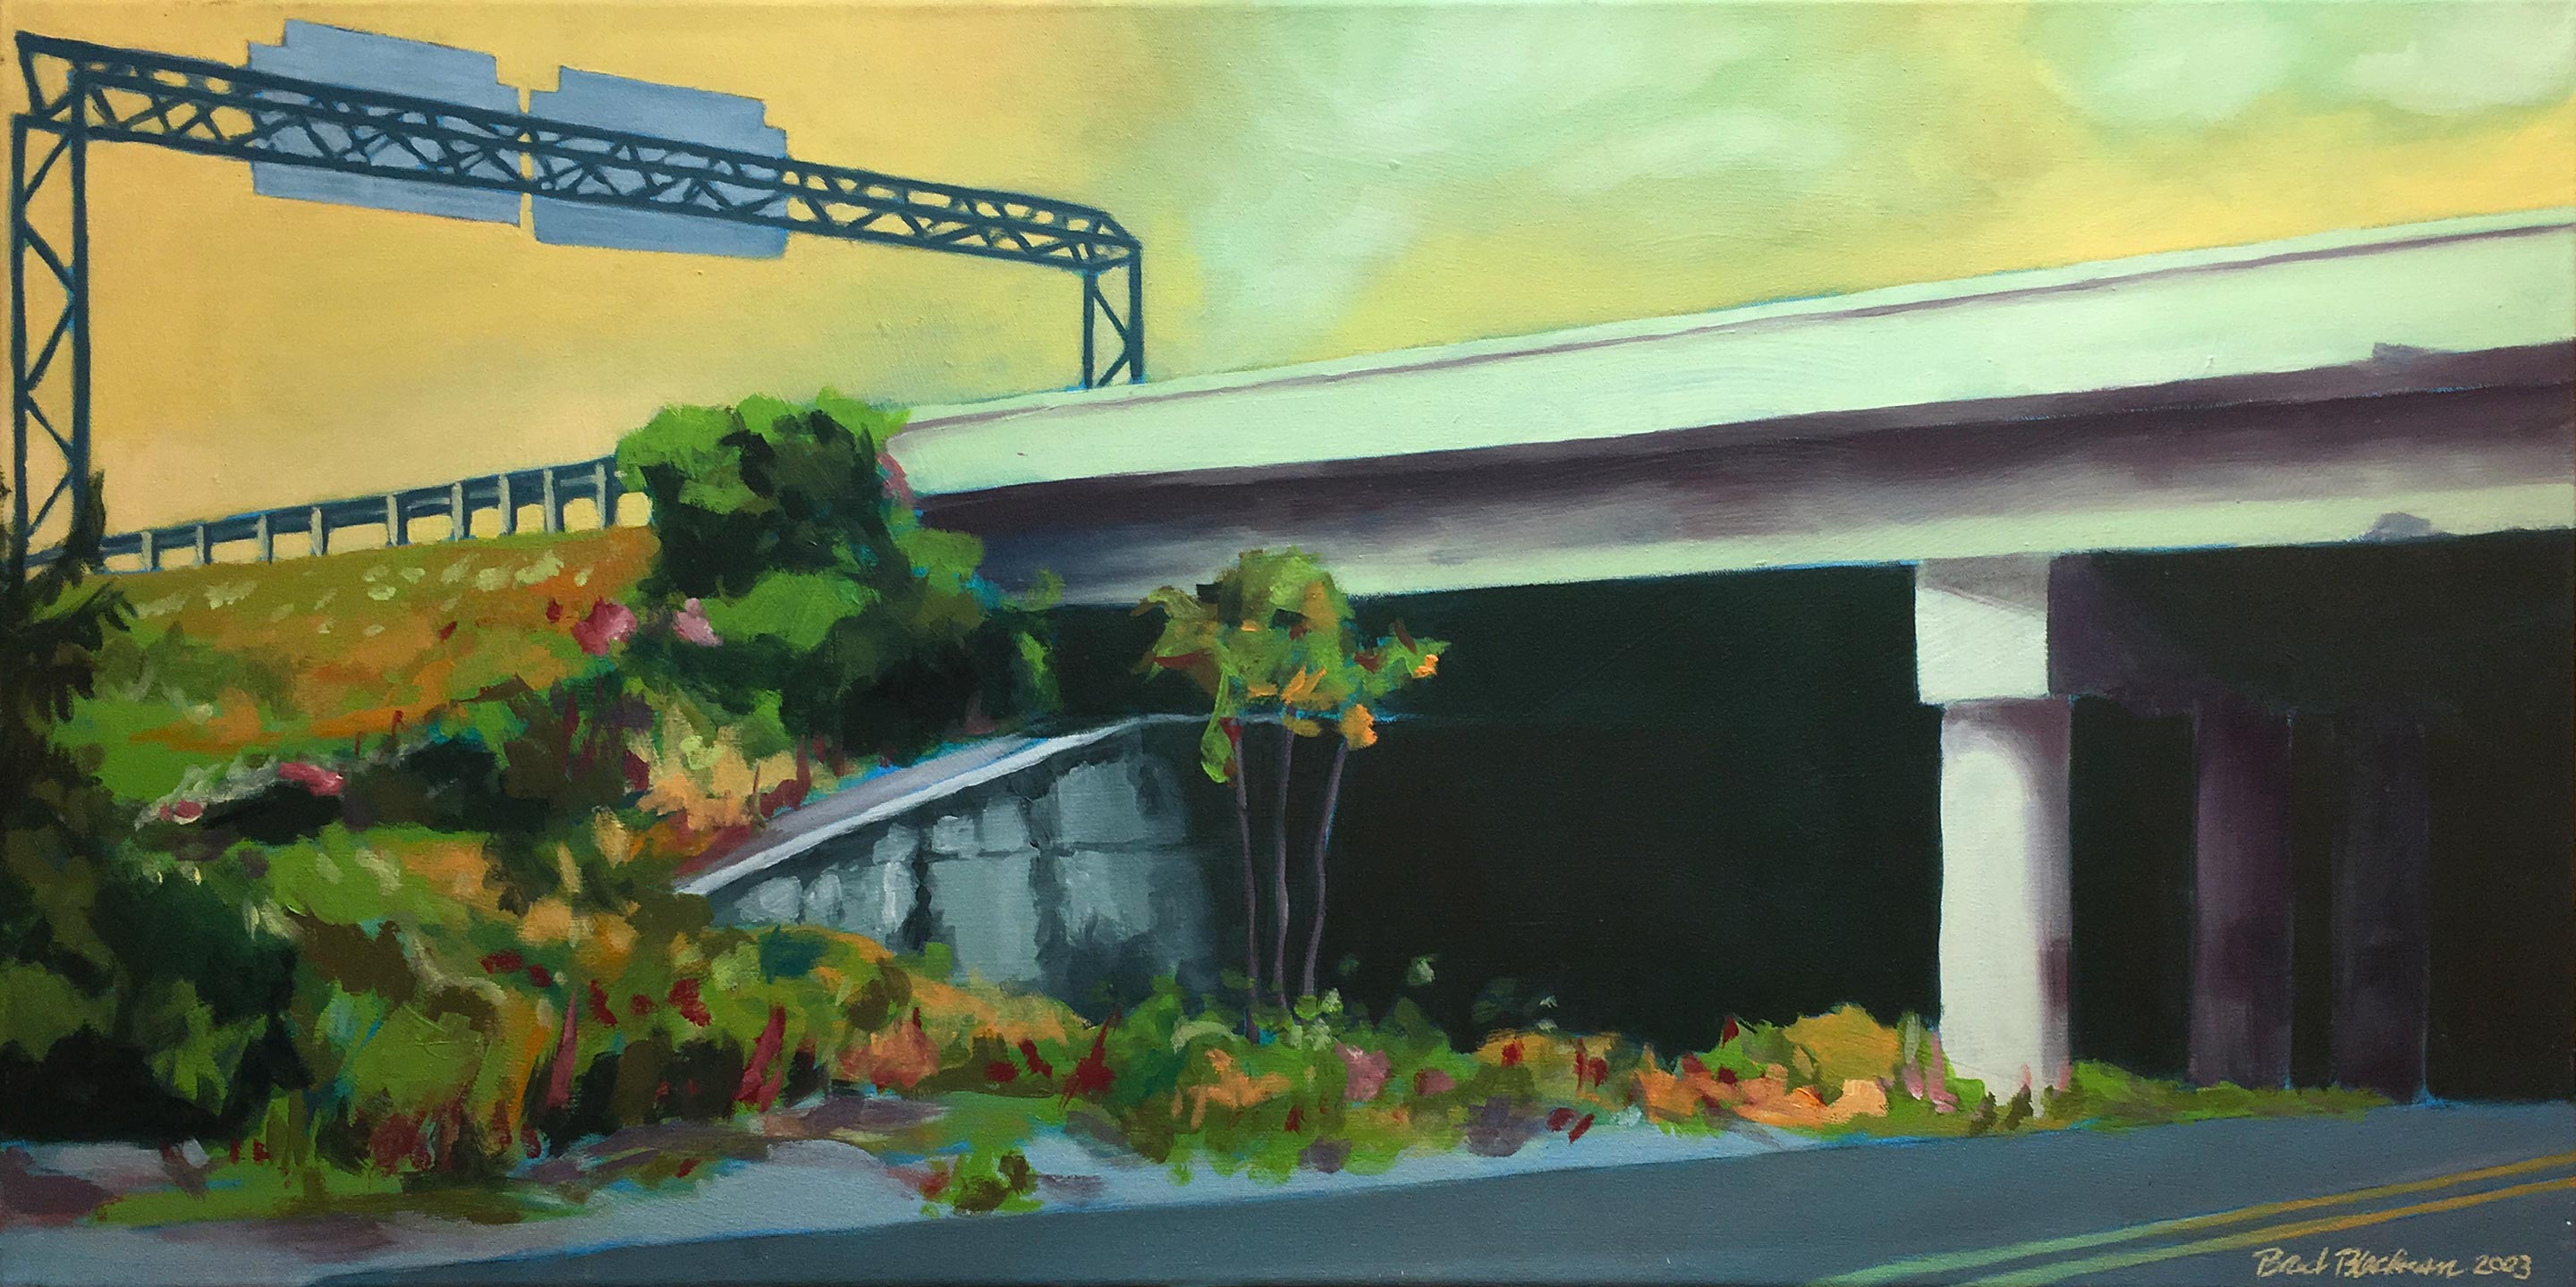 "Brad Blackman ""McGavock"" 2003. Oil on canvas, 40 x 20 inches"